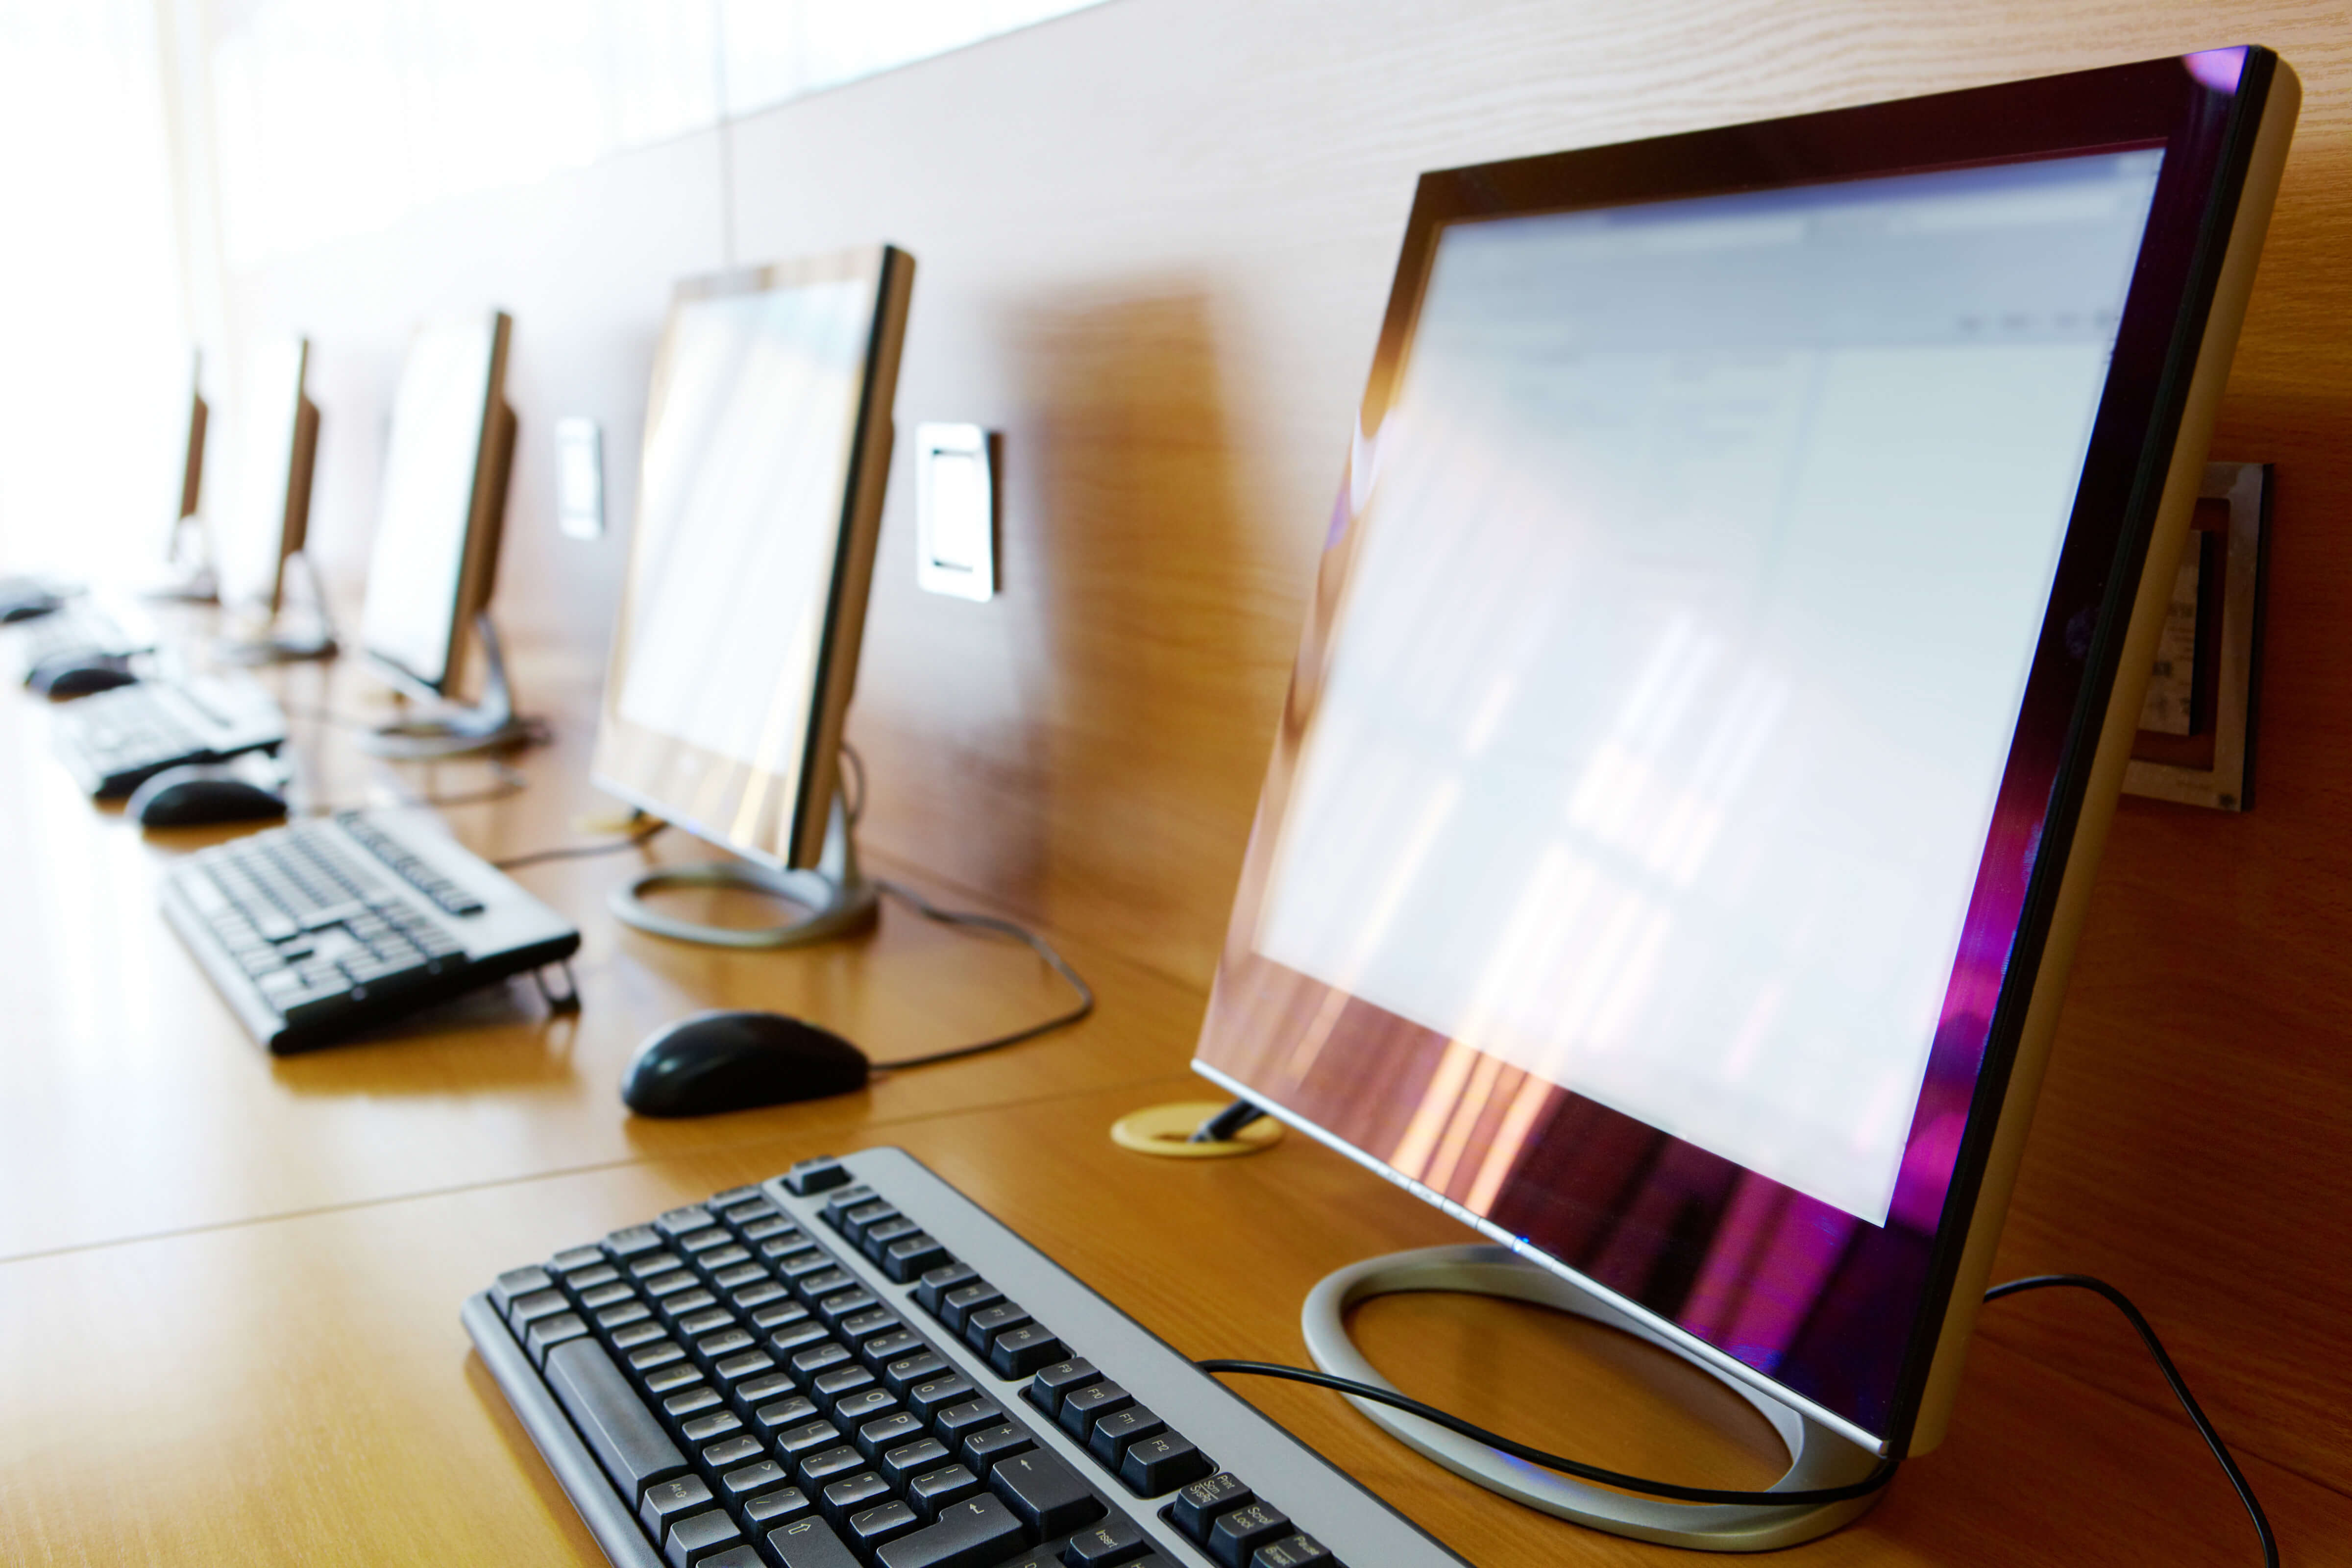 A row of desktop computers used by students